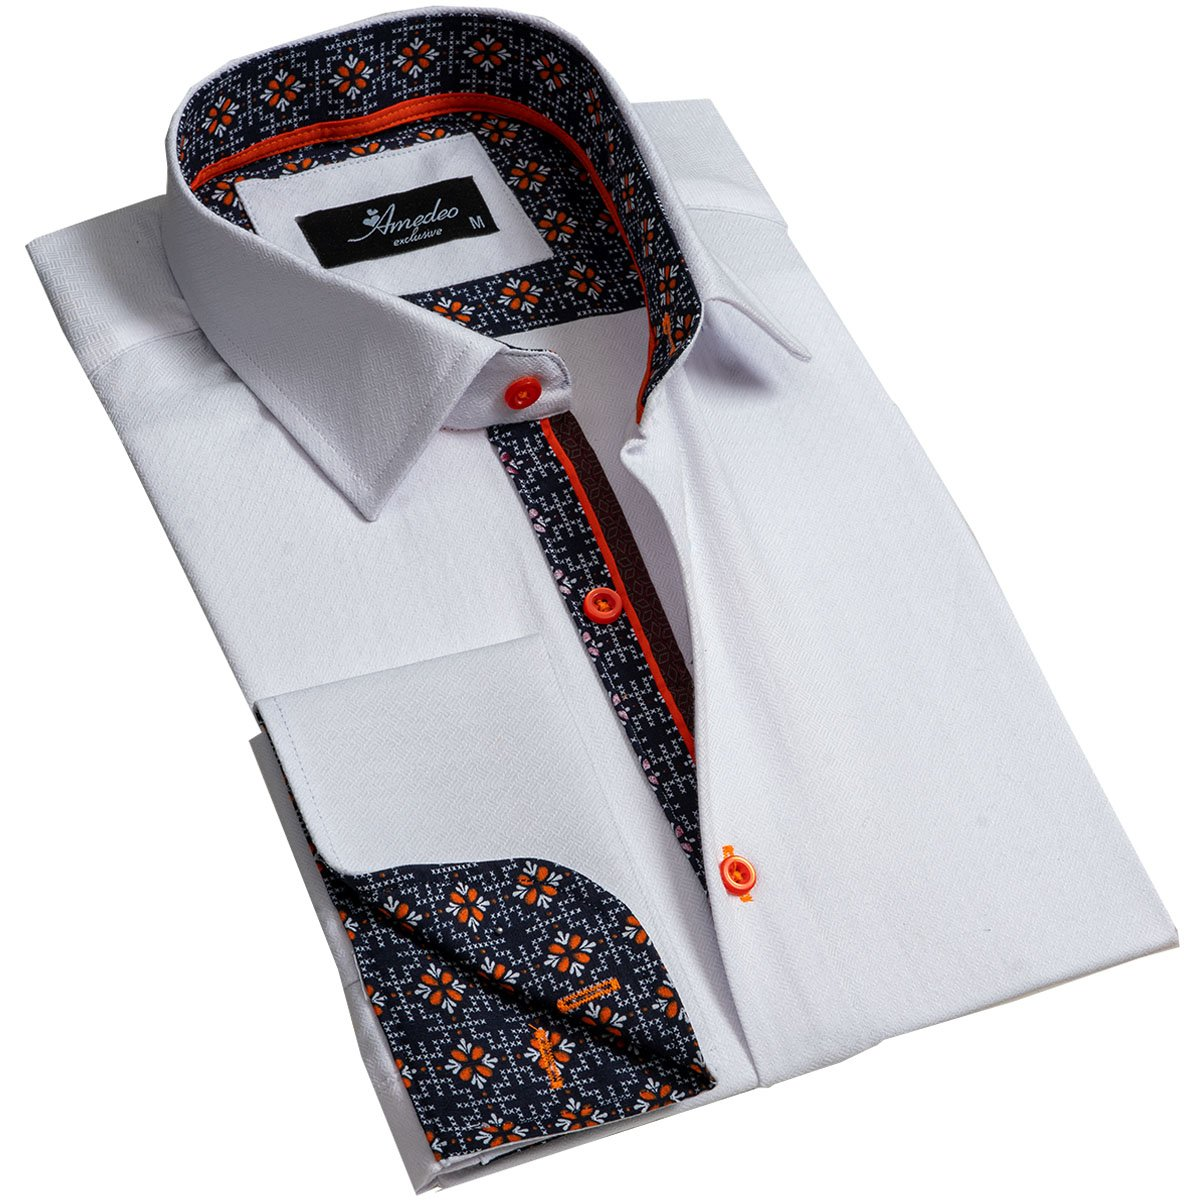 Textured White Men's Reversible Dress Shirt, Button Down Slim Fit with French Cuff Casual and Formal - Amedeo Exclusive